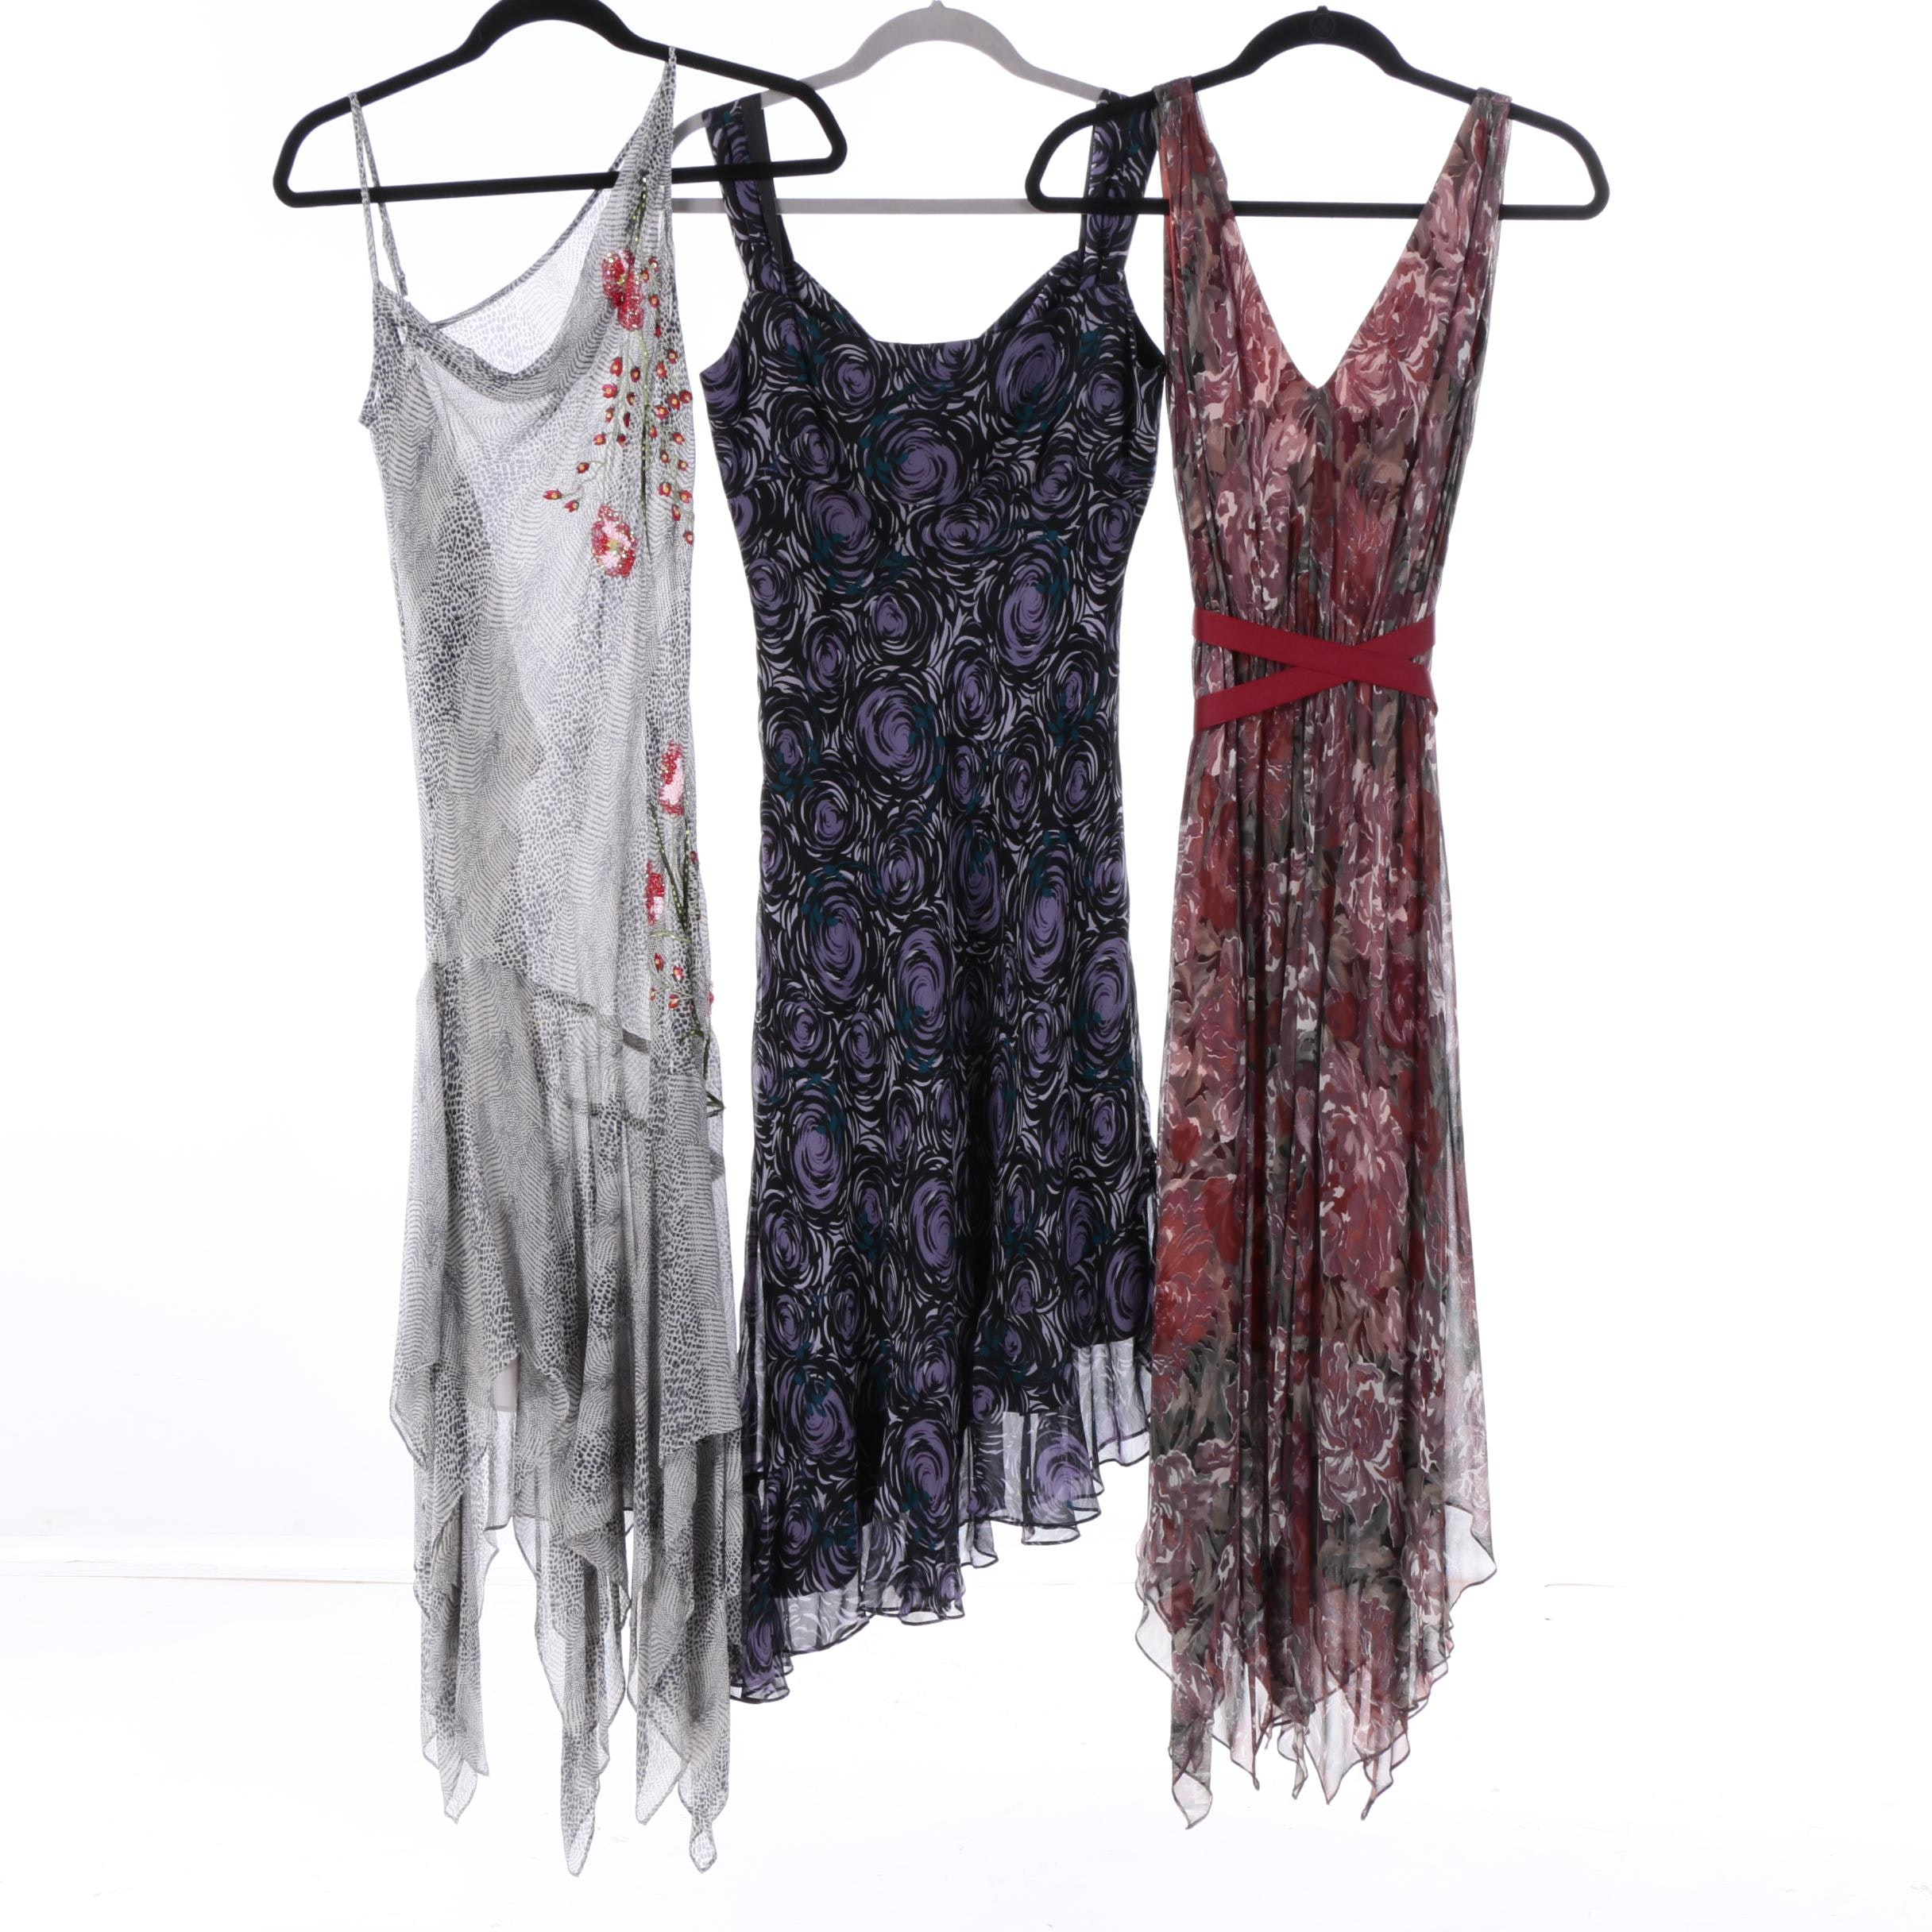 Women's Silk Sleeveless Dresses Including Laundry by Shelli Segal